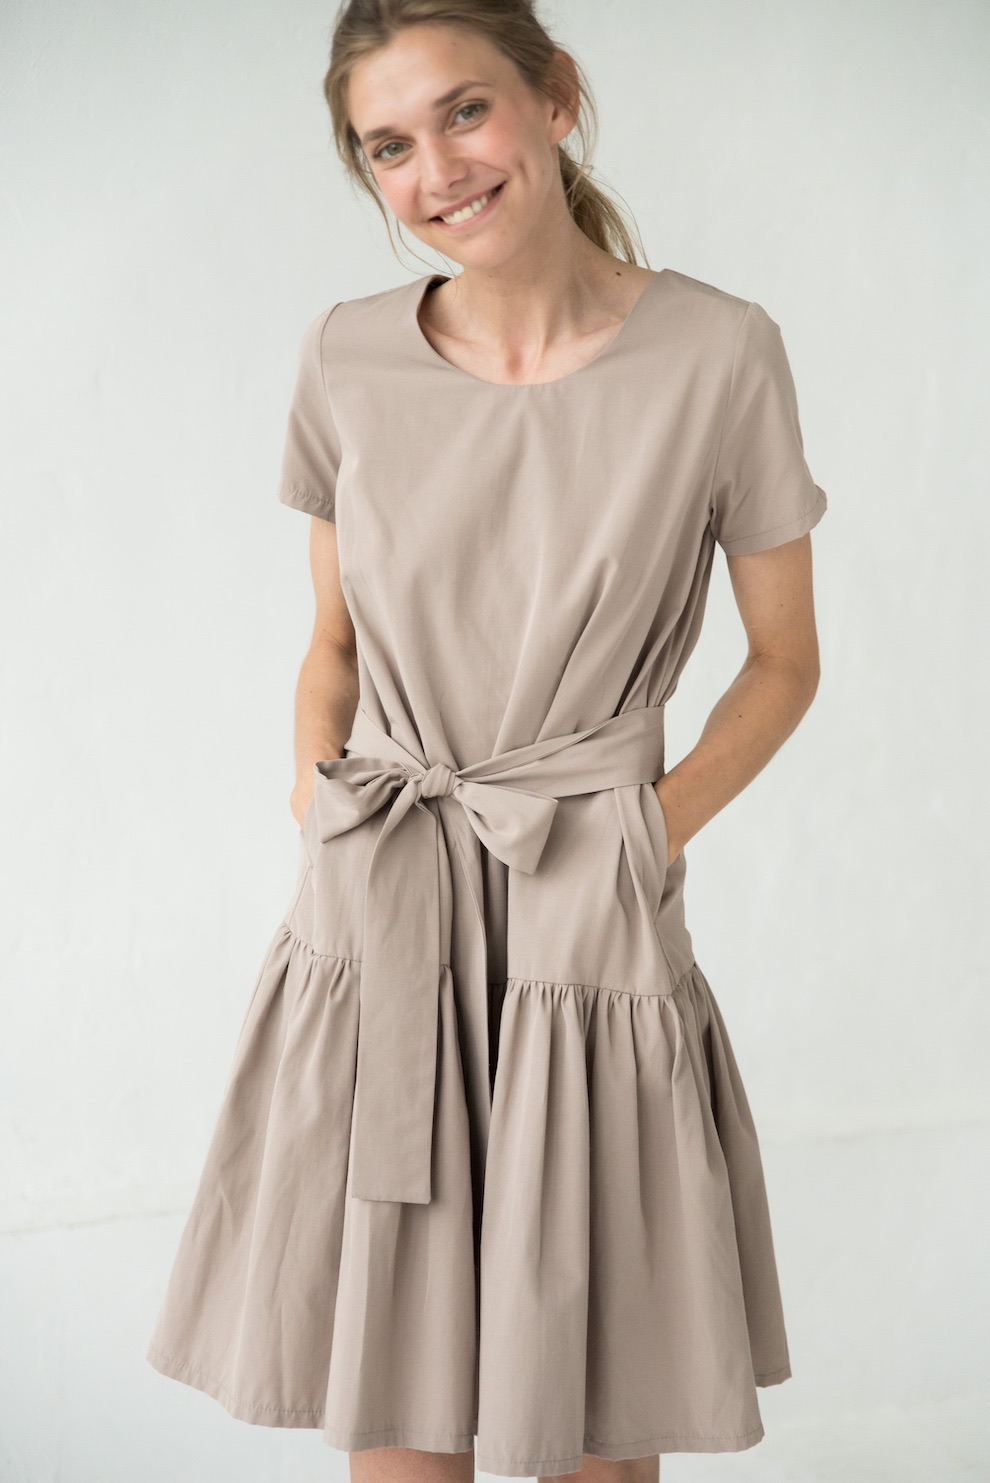 LeMuse sand SAND&DUNES CAPRI dress